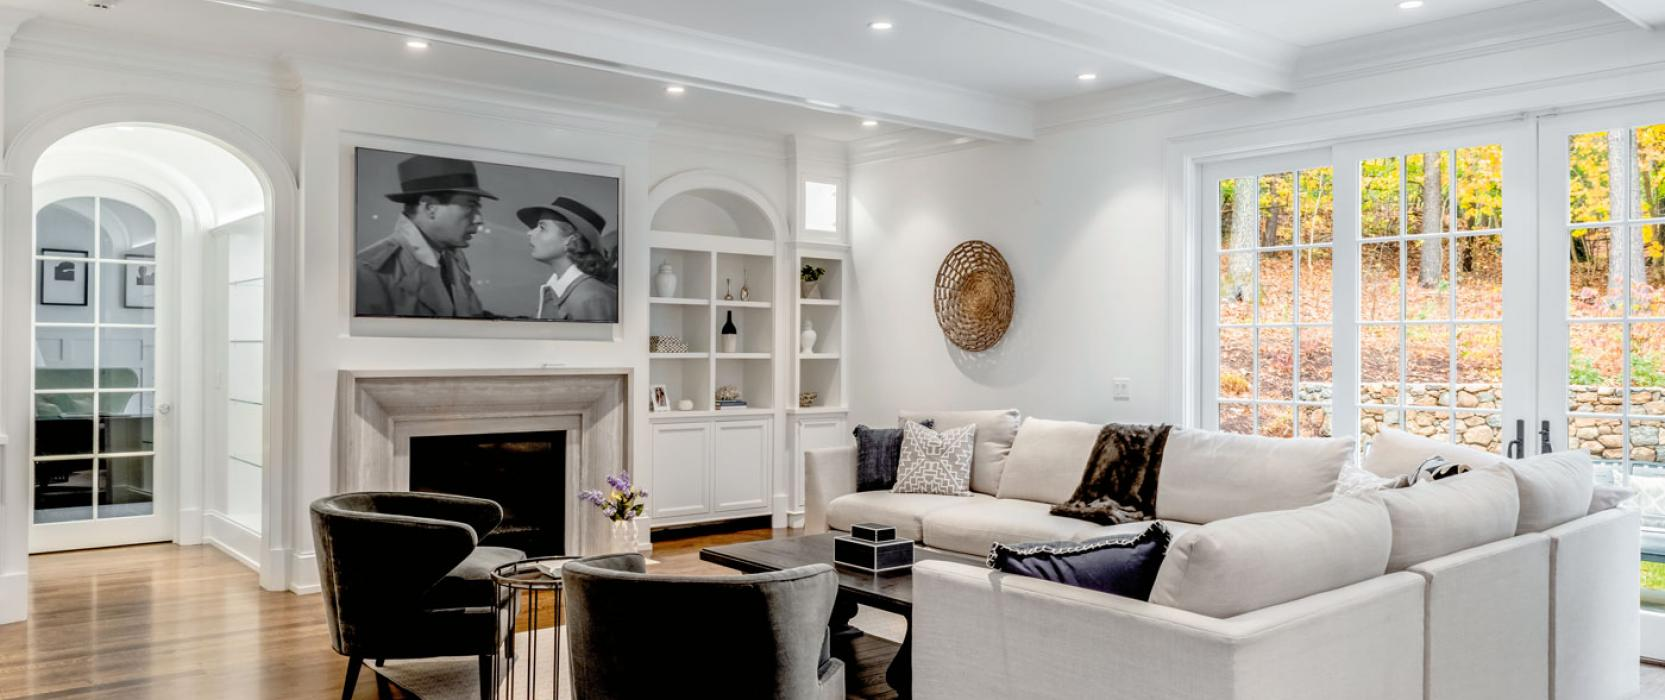 High-end turnkey Weston home for sale by top Boston builder